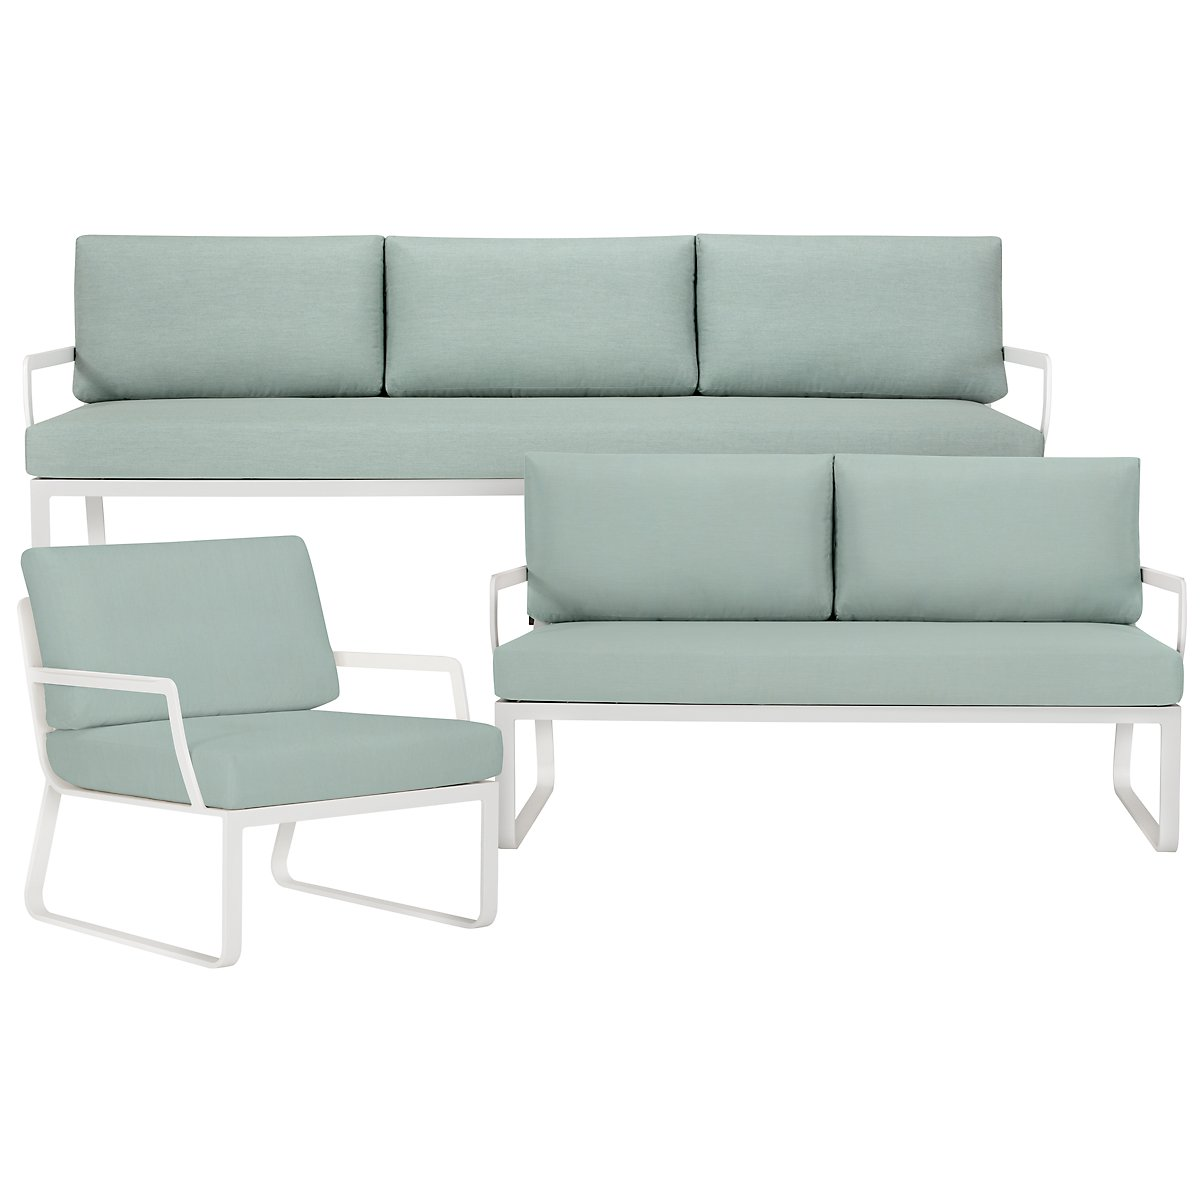 City Furniture Ibiza Teal Loveseat